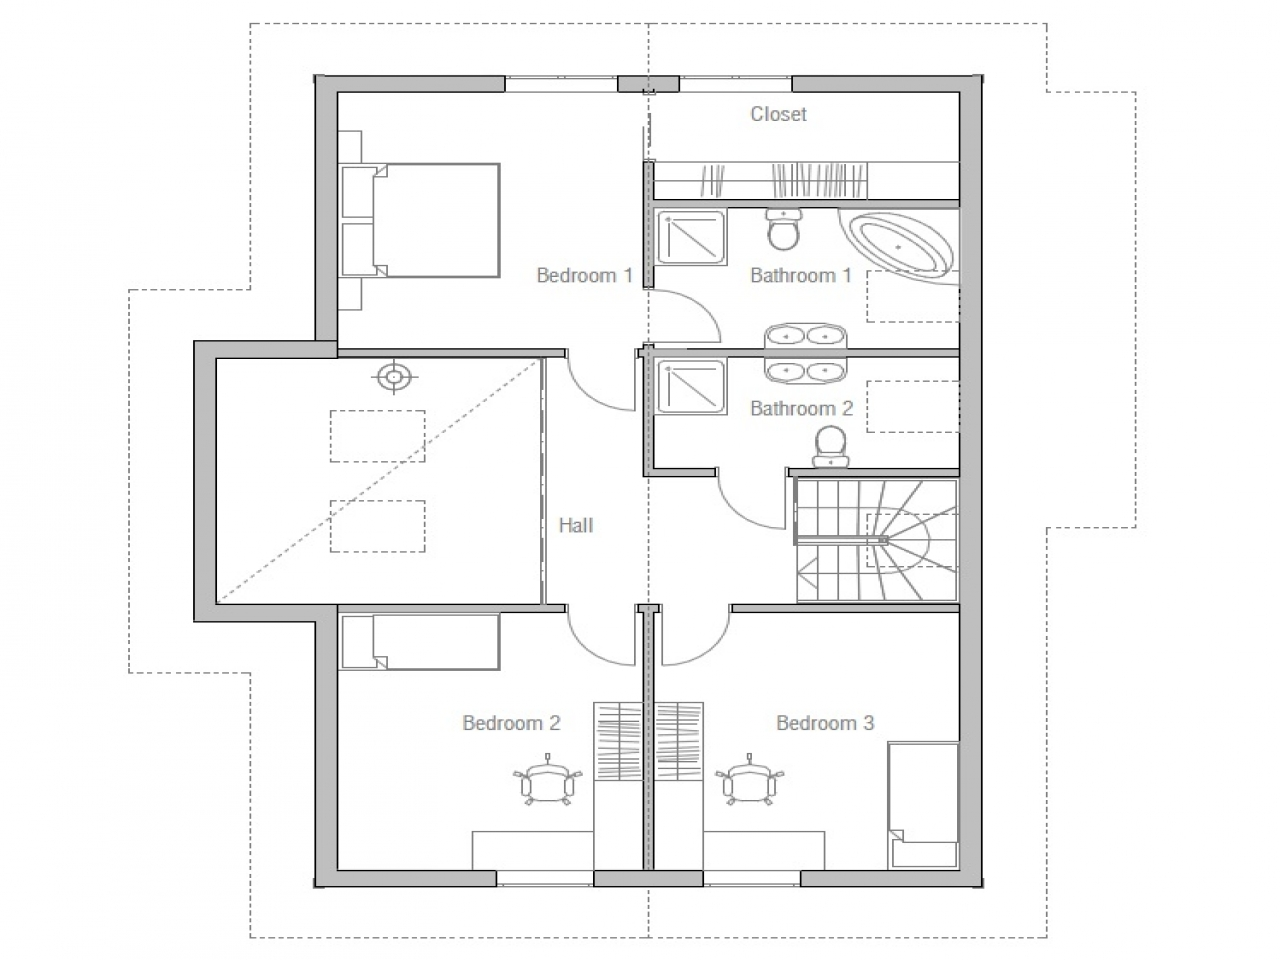 Small affordable house plans small two bedroom house plans for Affordable home floor plans